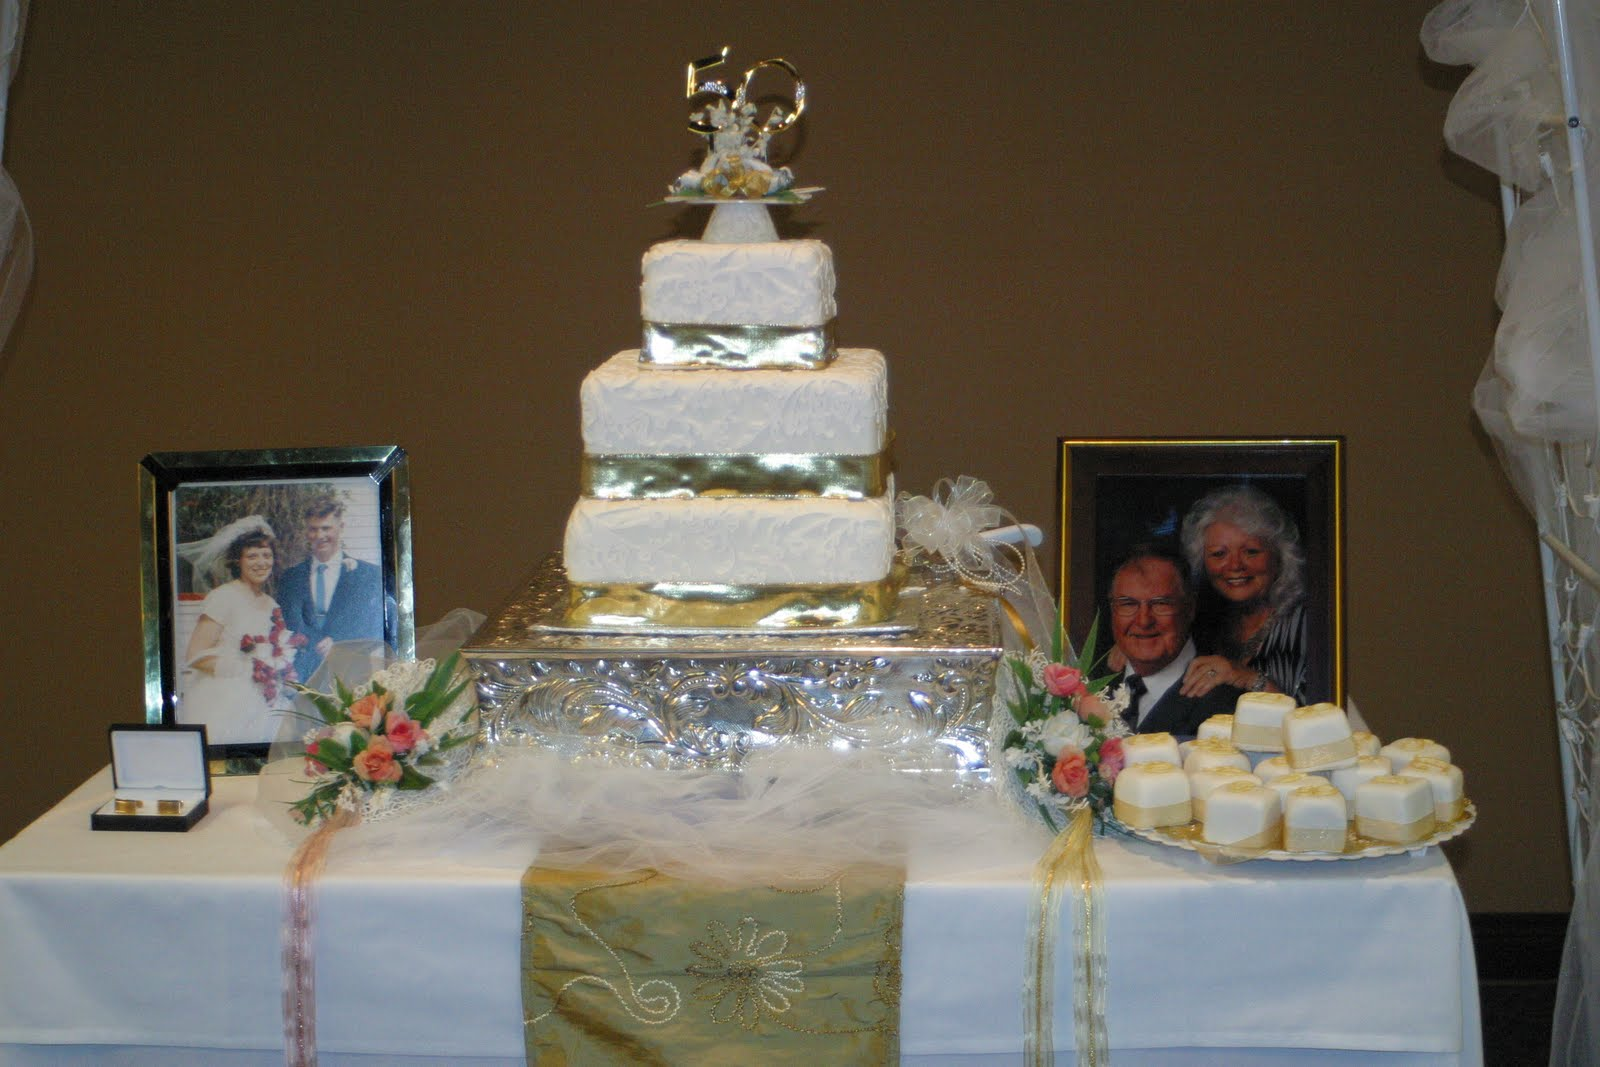 Cake Decorating Ideas For 50th Wedding Anniversary : 50th Wedding Anniversary Decorations Romantic Decoration